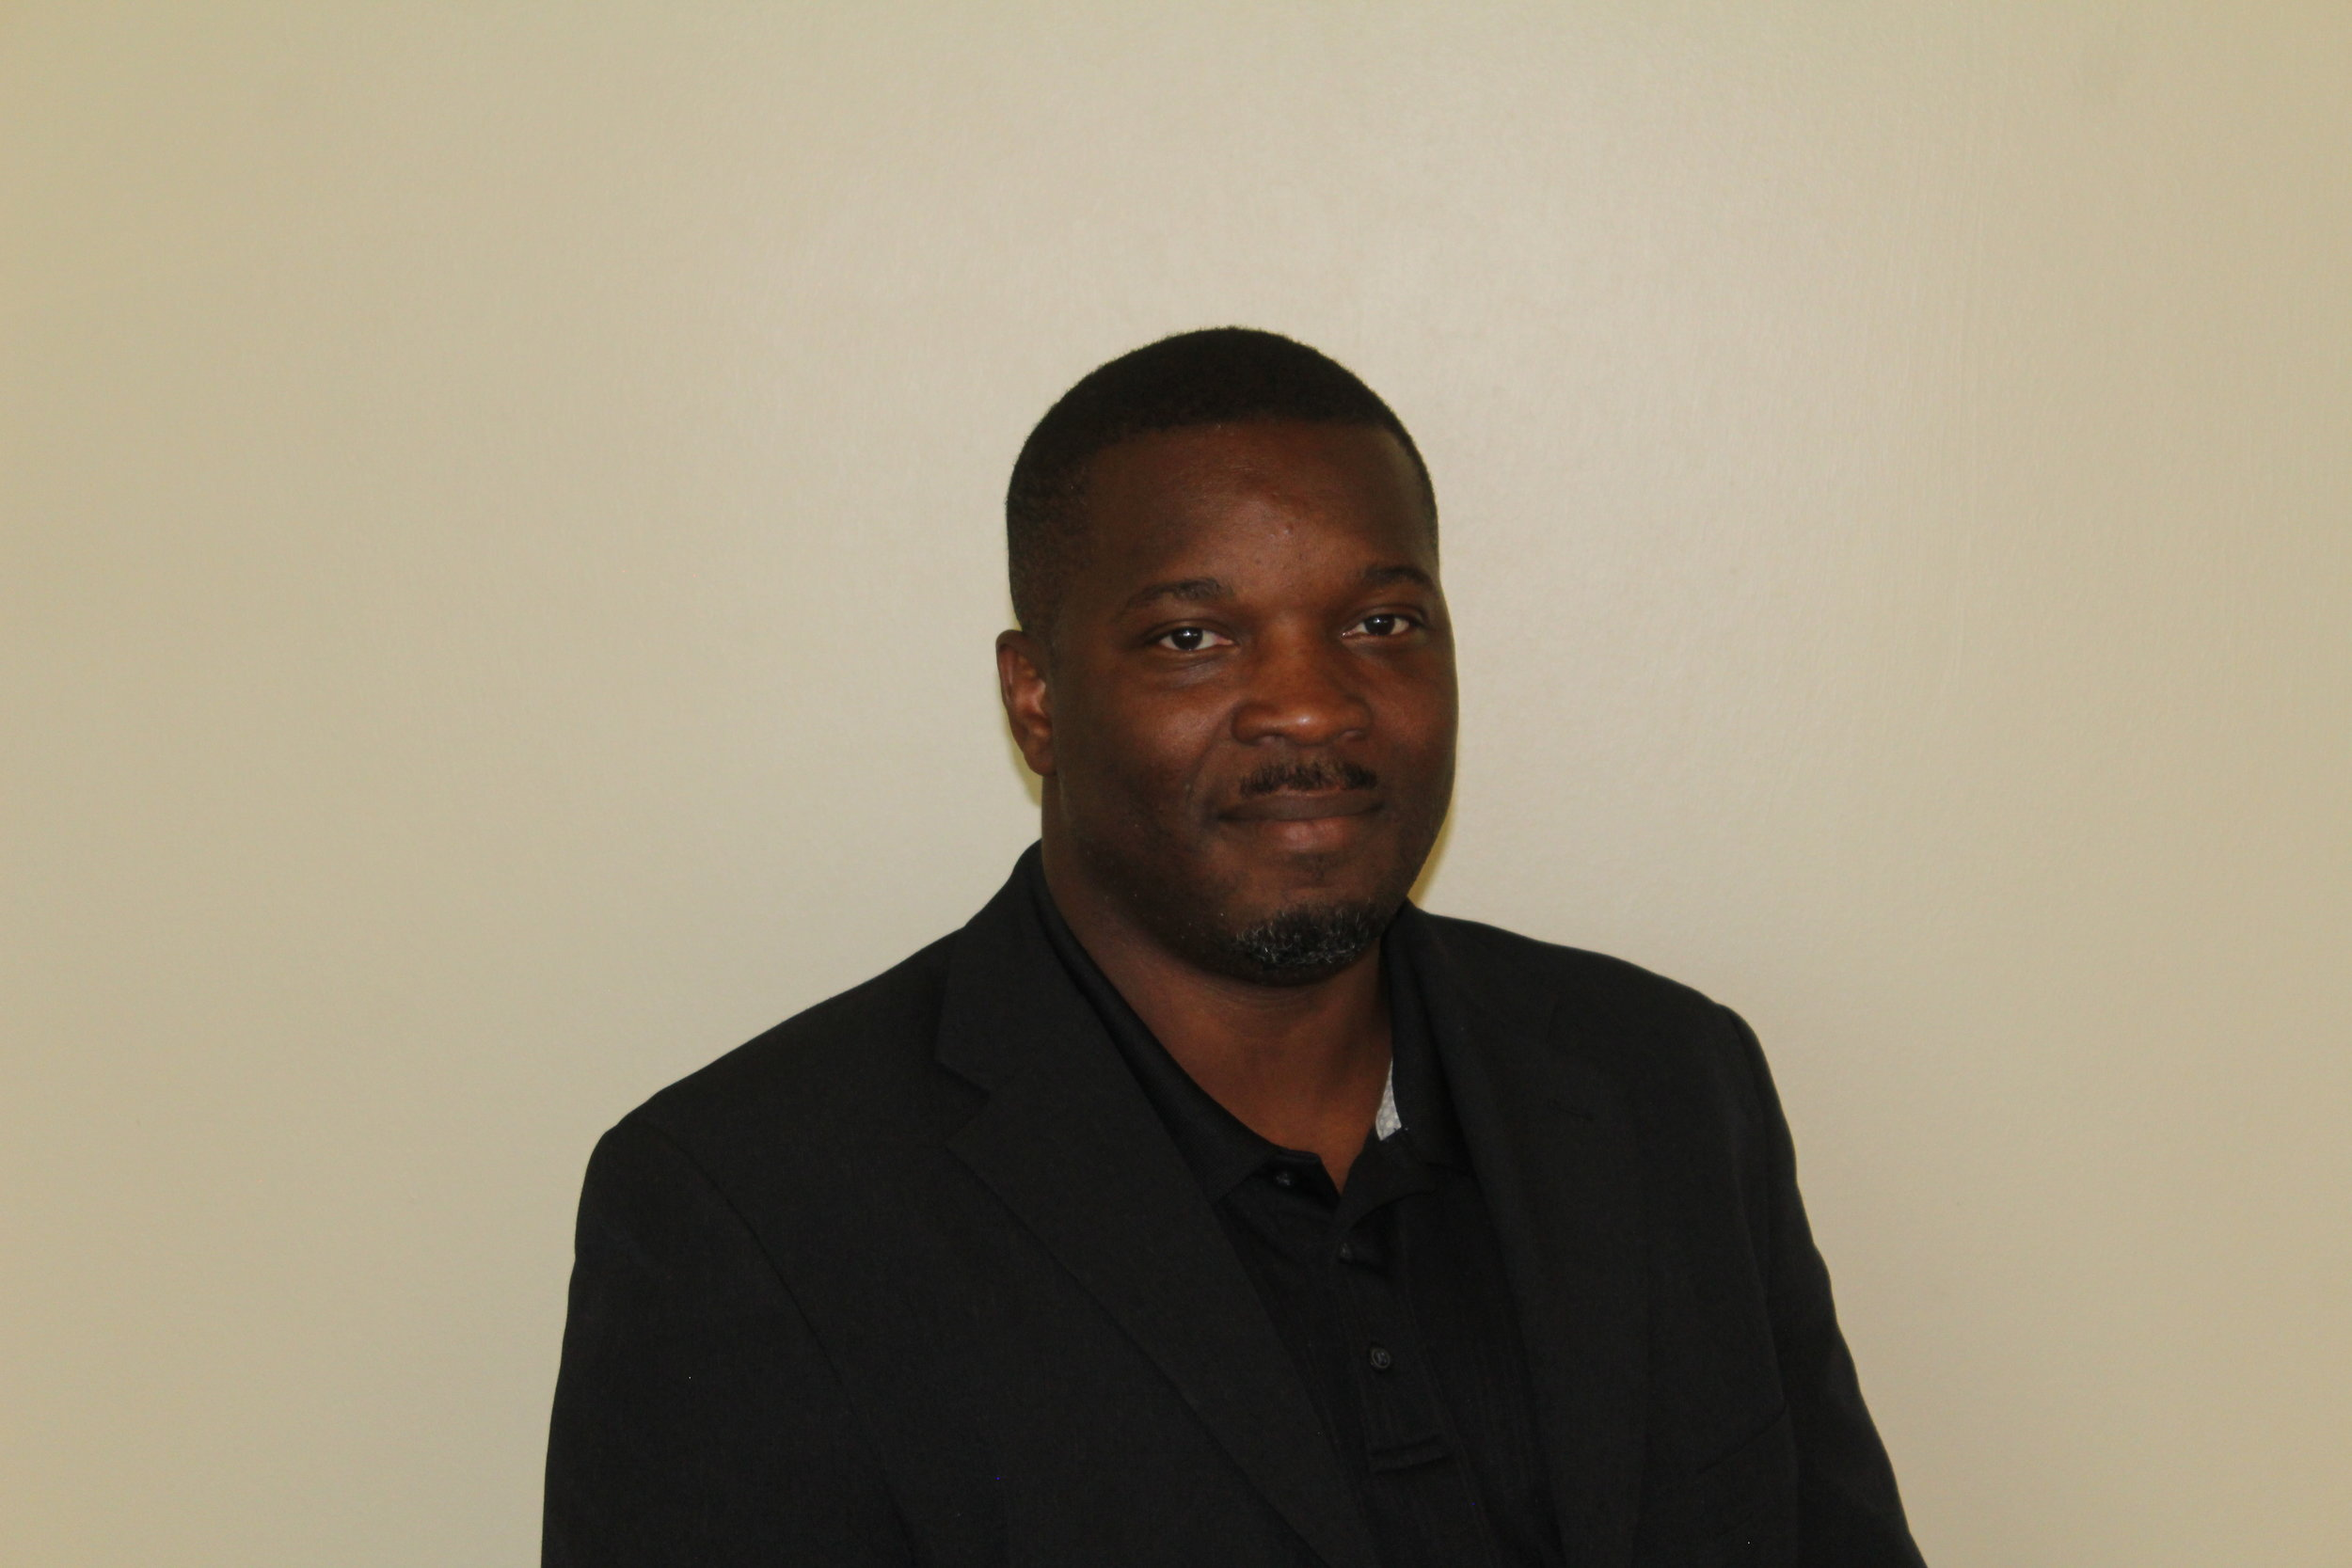 Johnny Deas, COO, Uplift Education